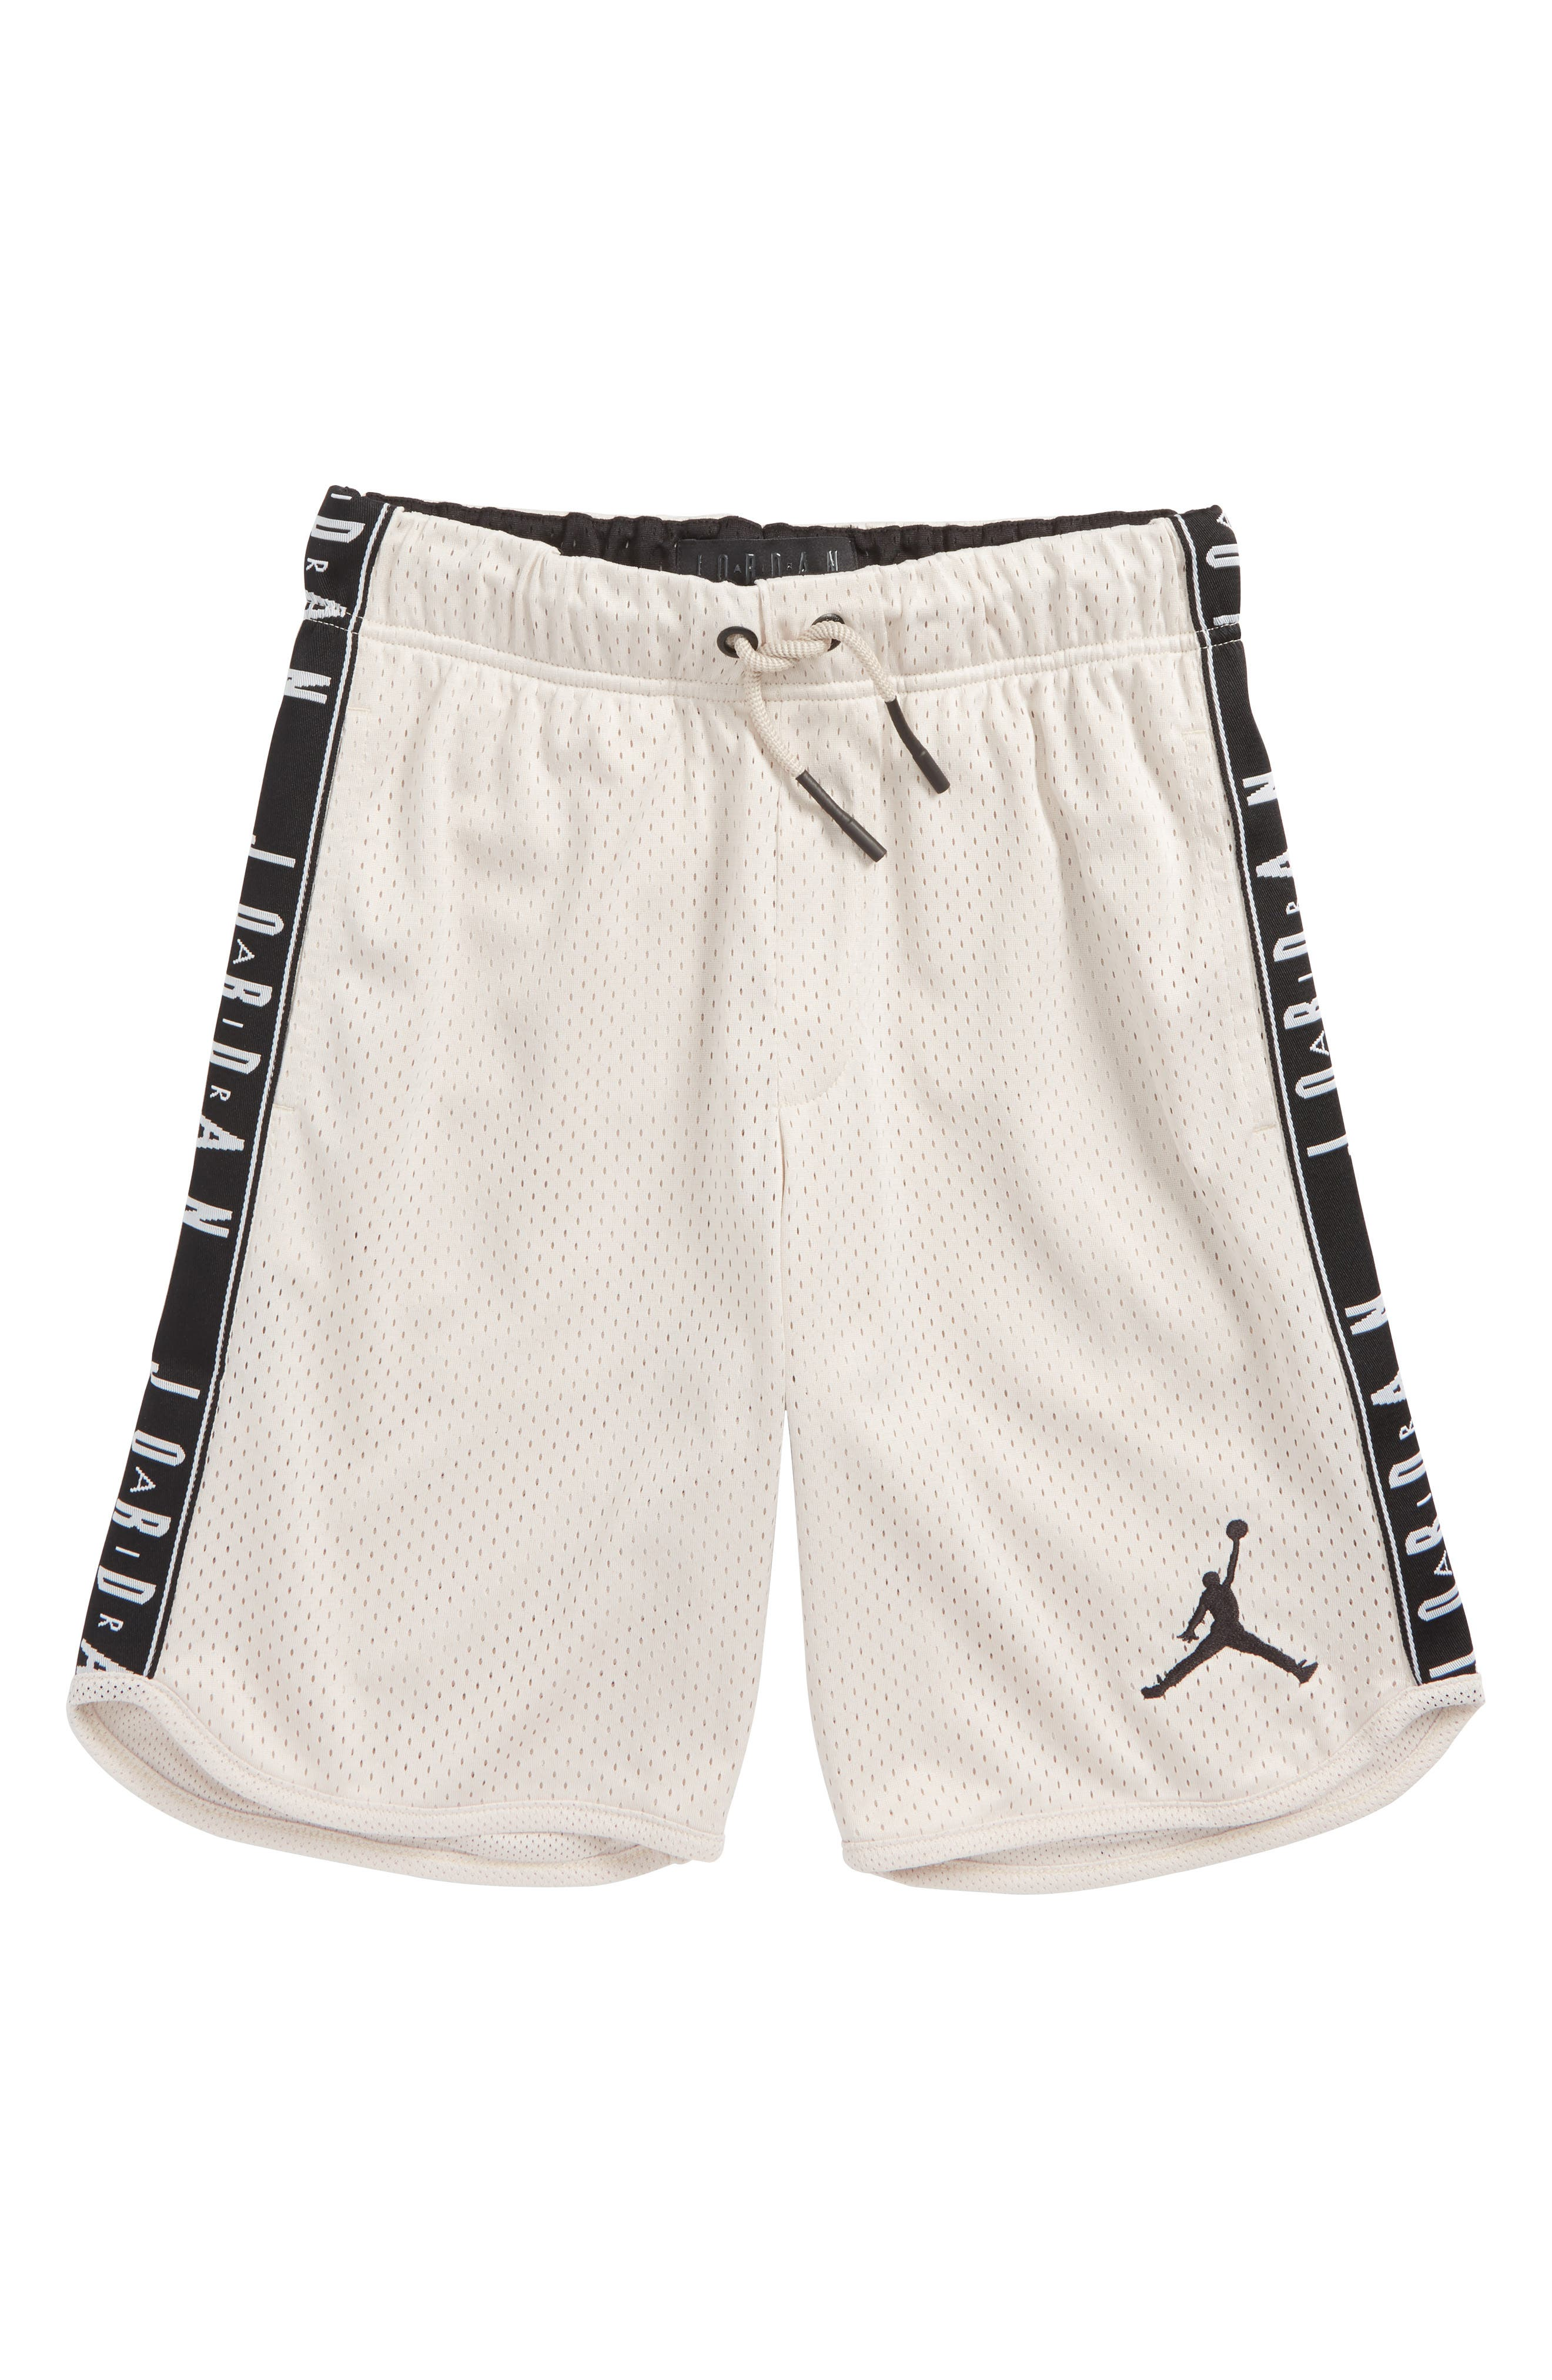 Jordan Rise Graphic Tape Baller Short,                         Main,                         color, Desert Sand